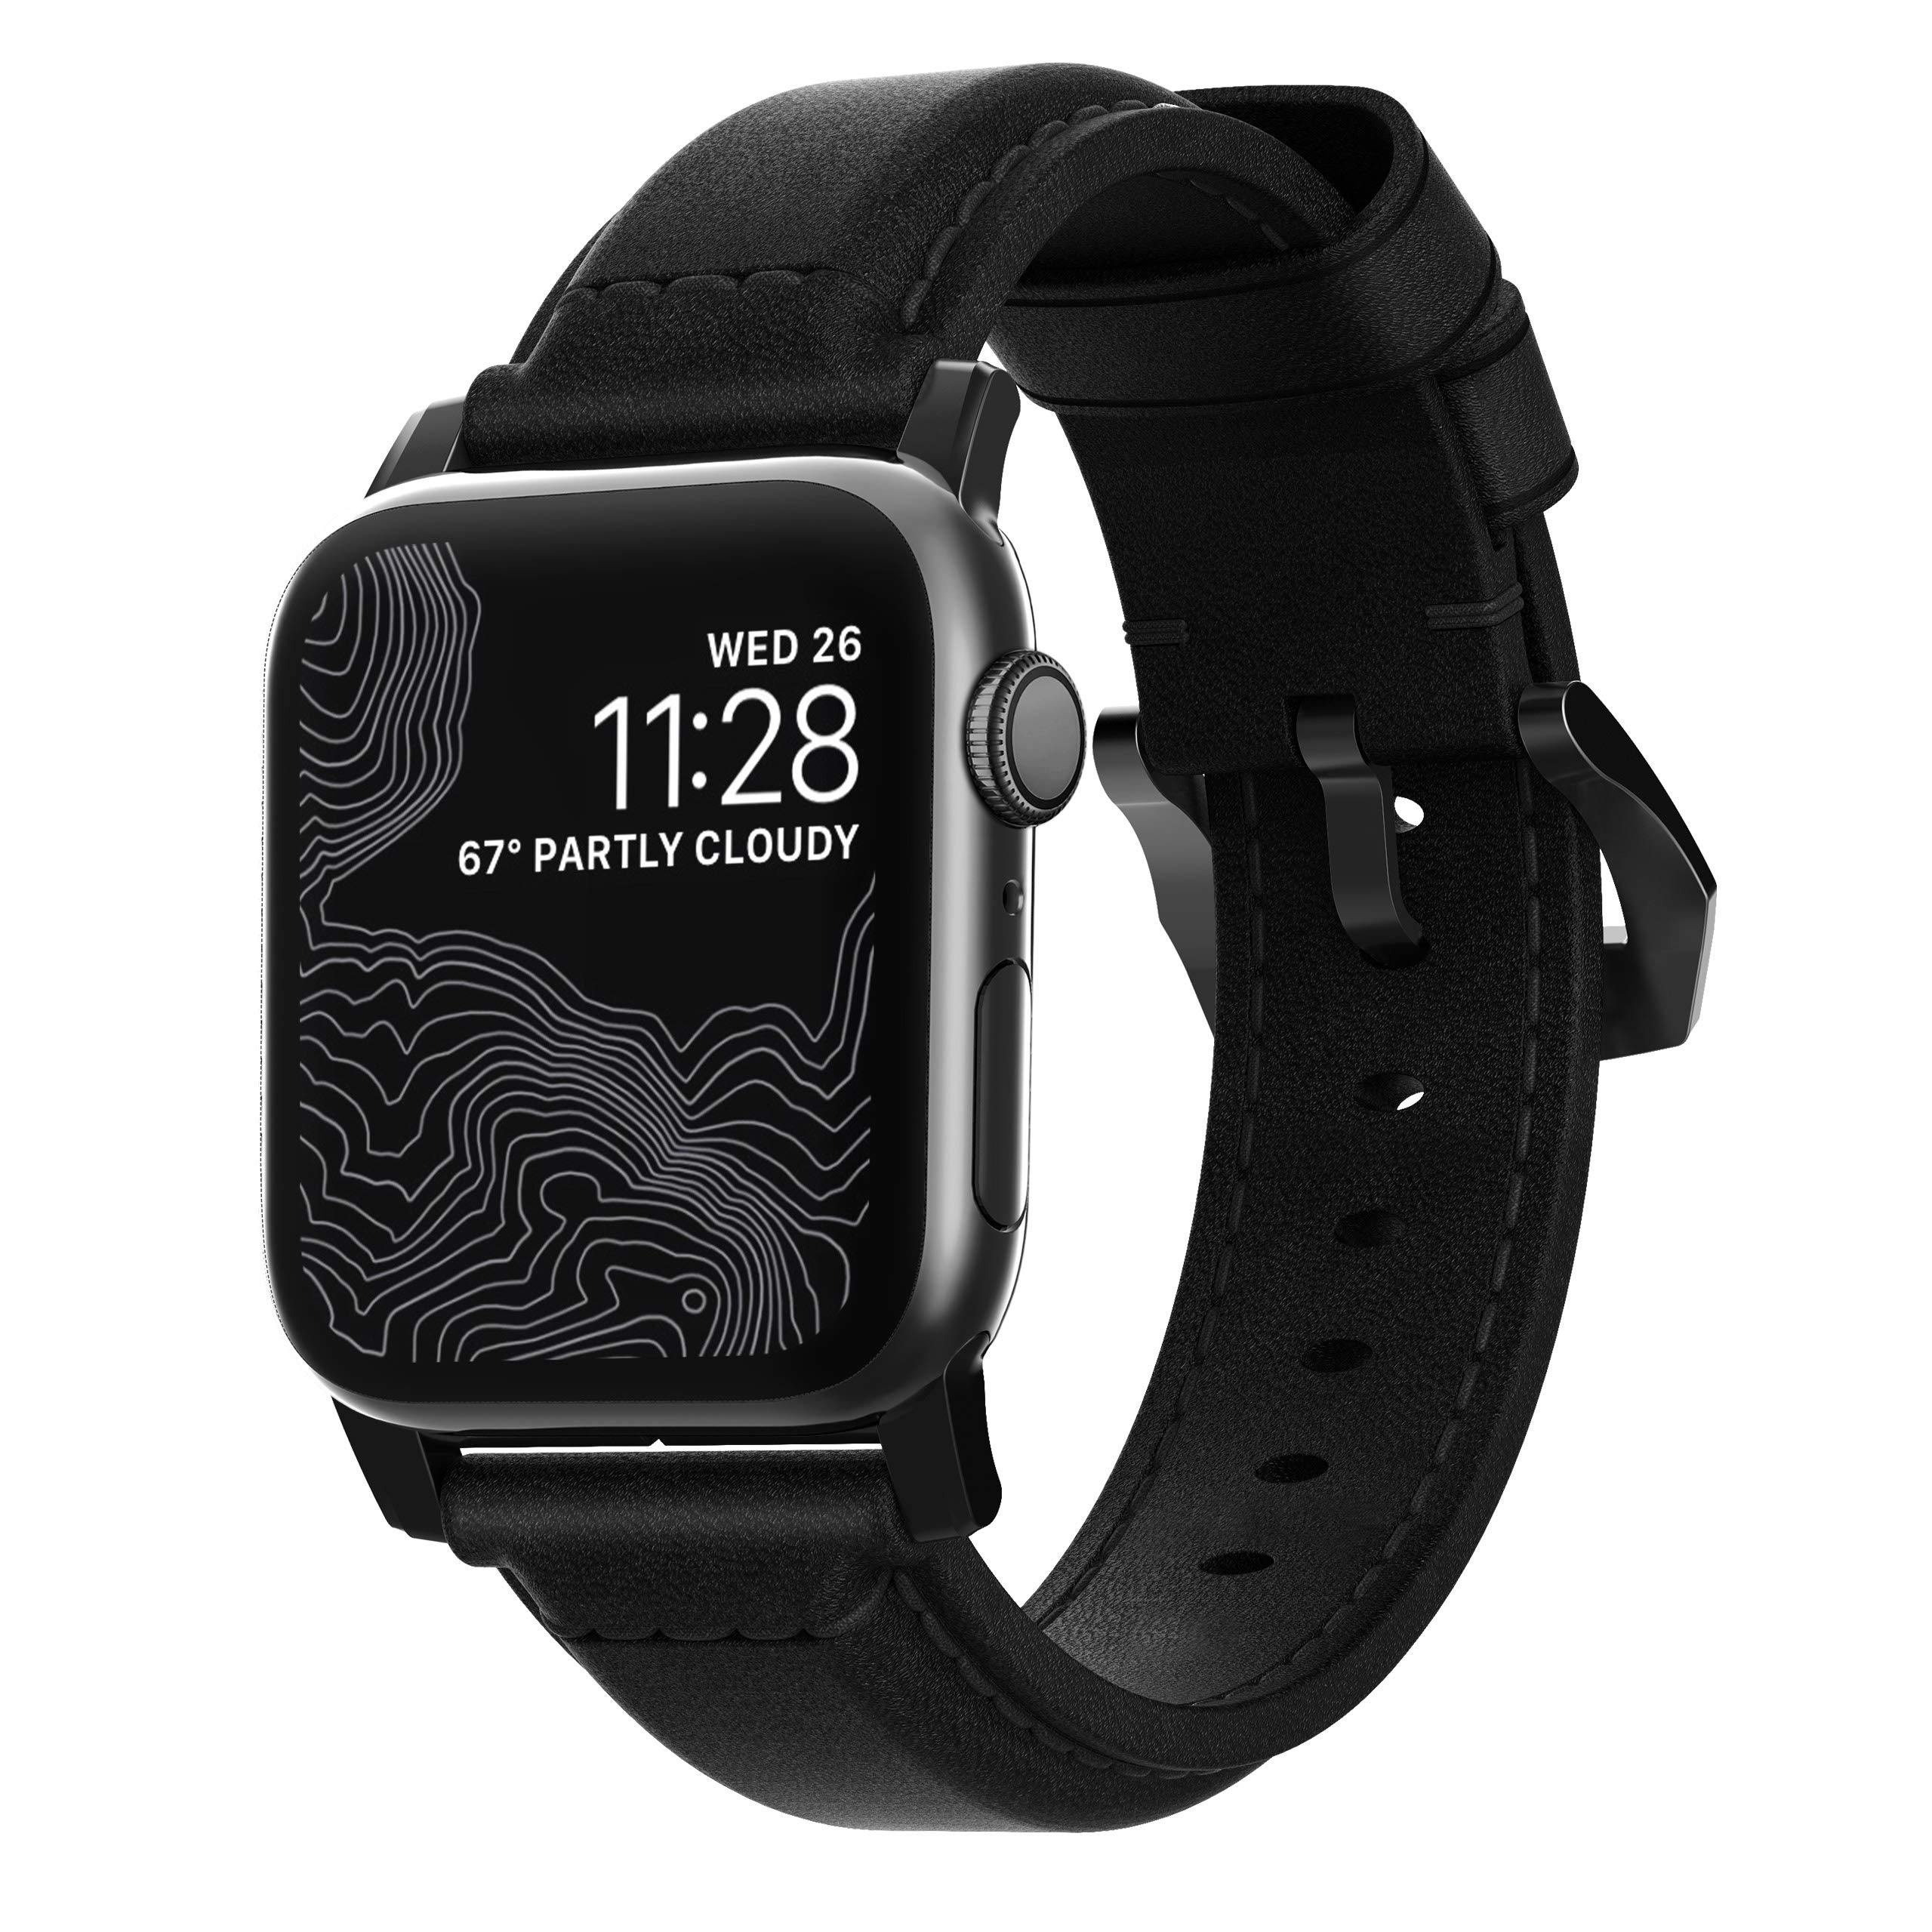 Nomad Traditional Strap for Apple Watch 44mm/42mm | Black Horween Leather | Black Hardware